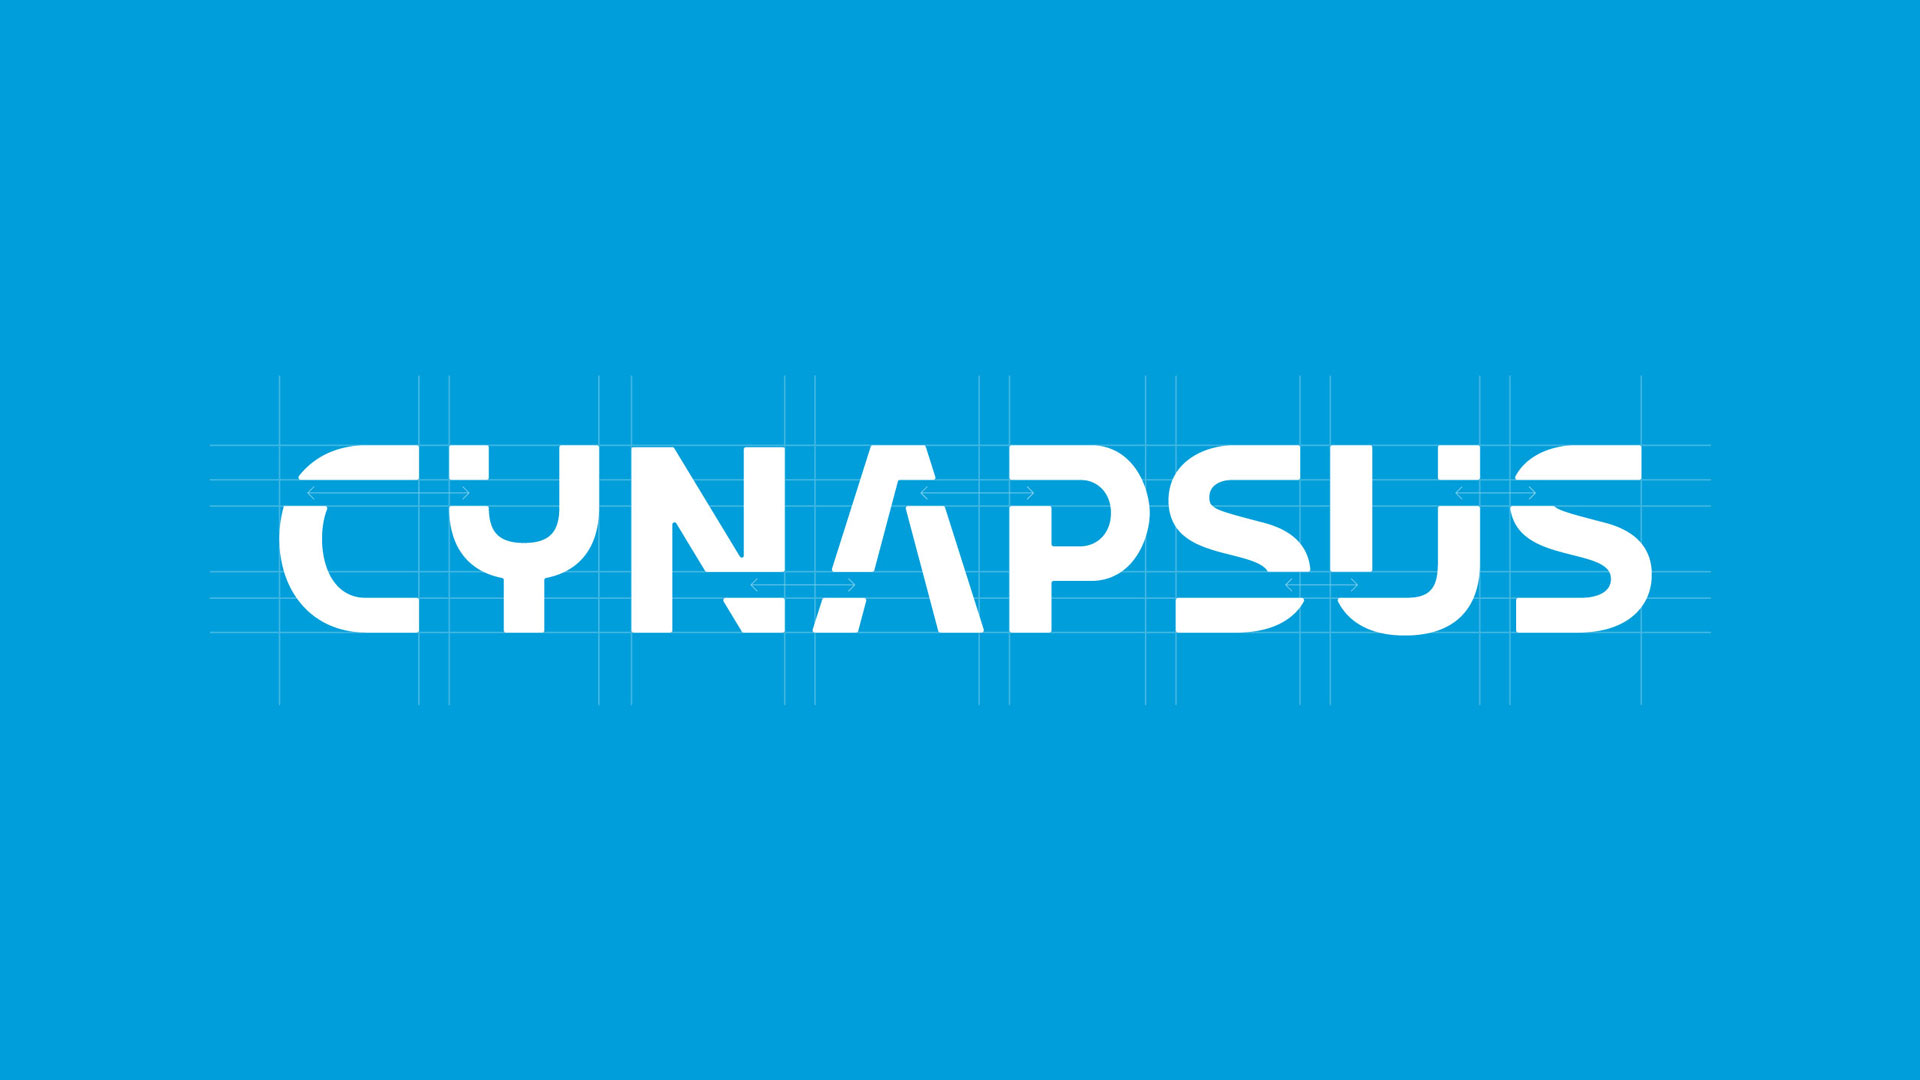 cynapsus logo on blue background